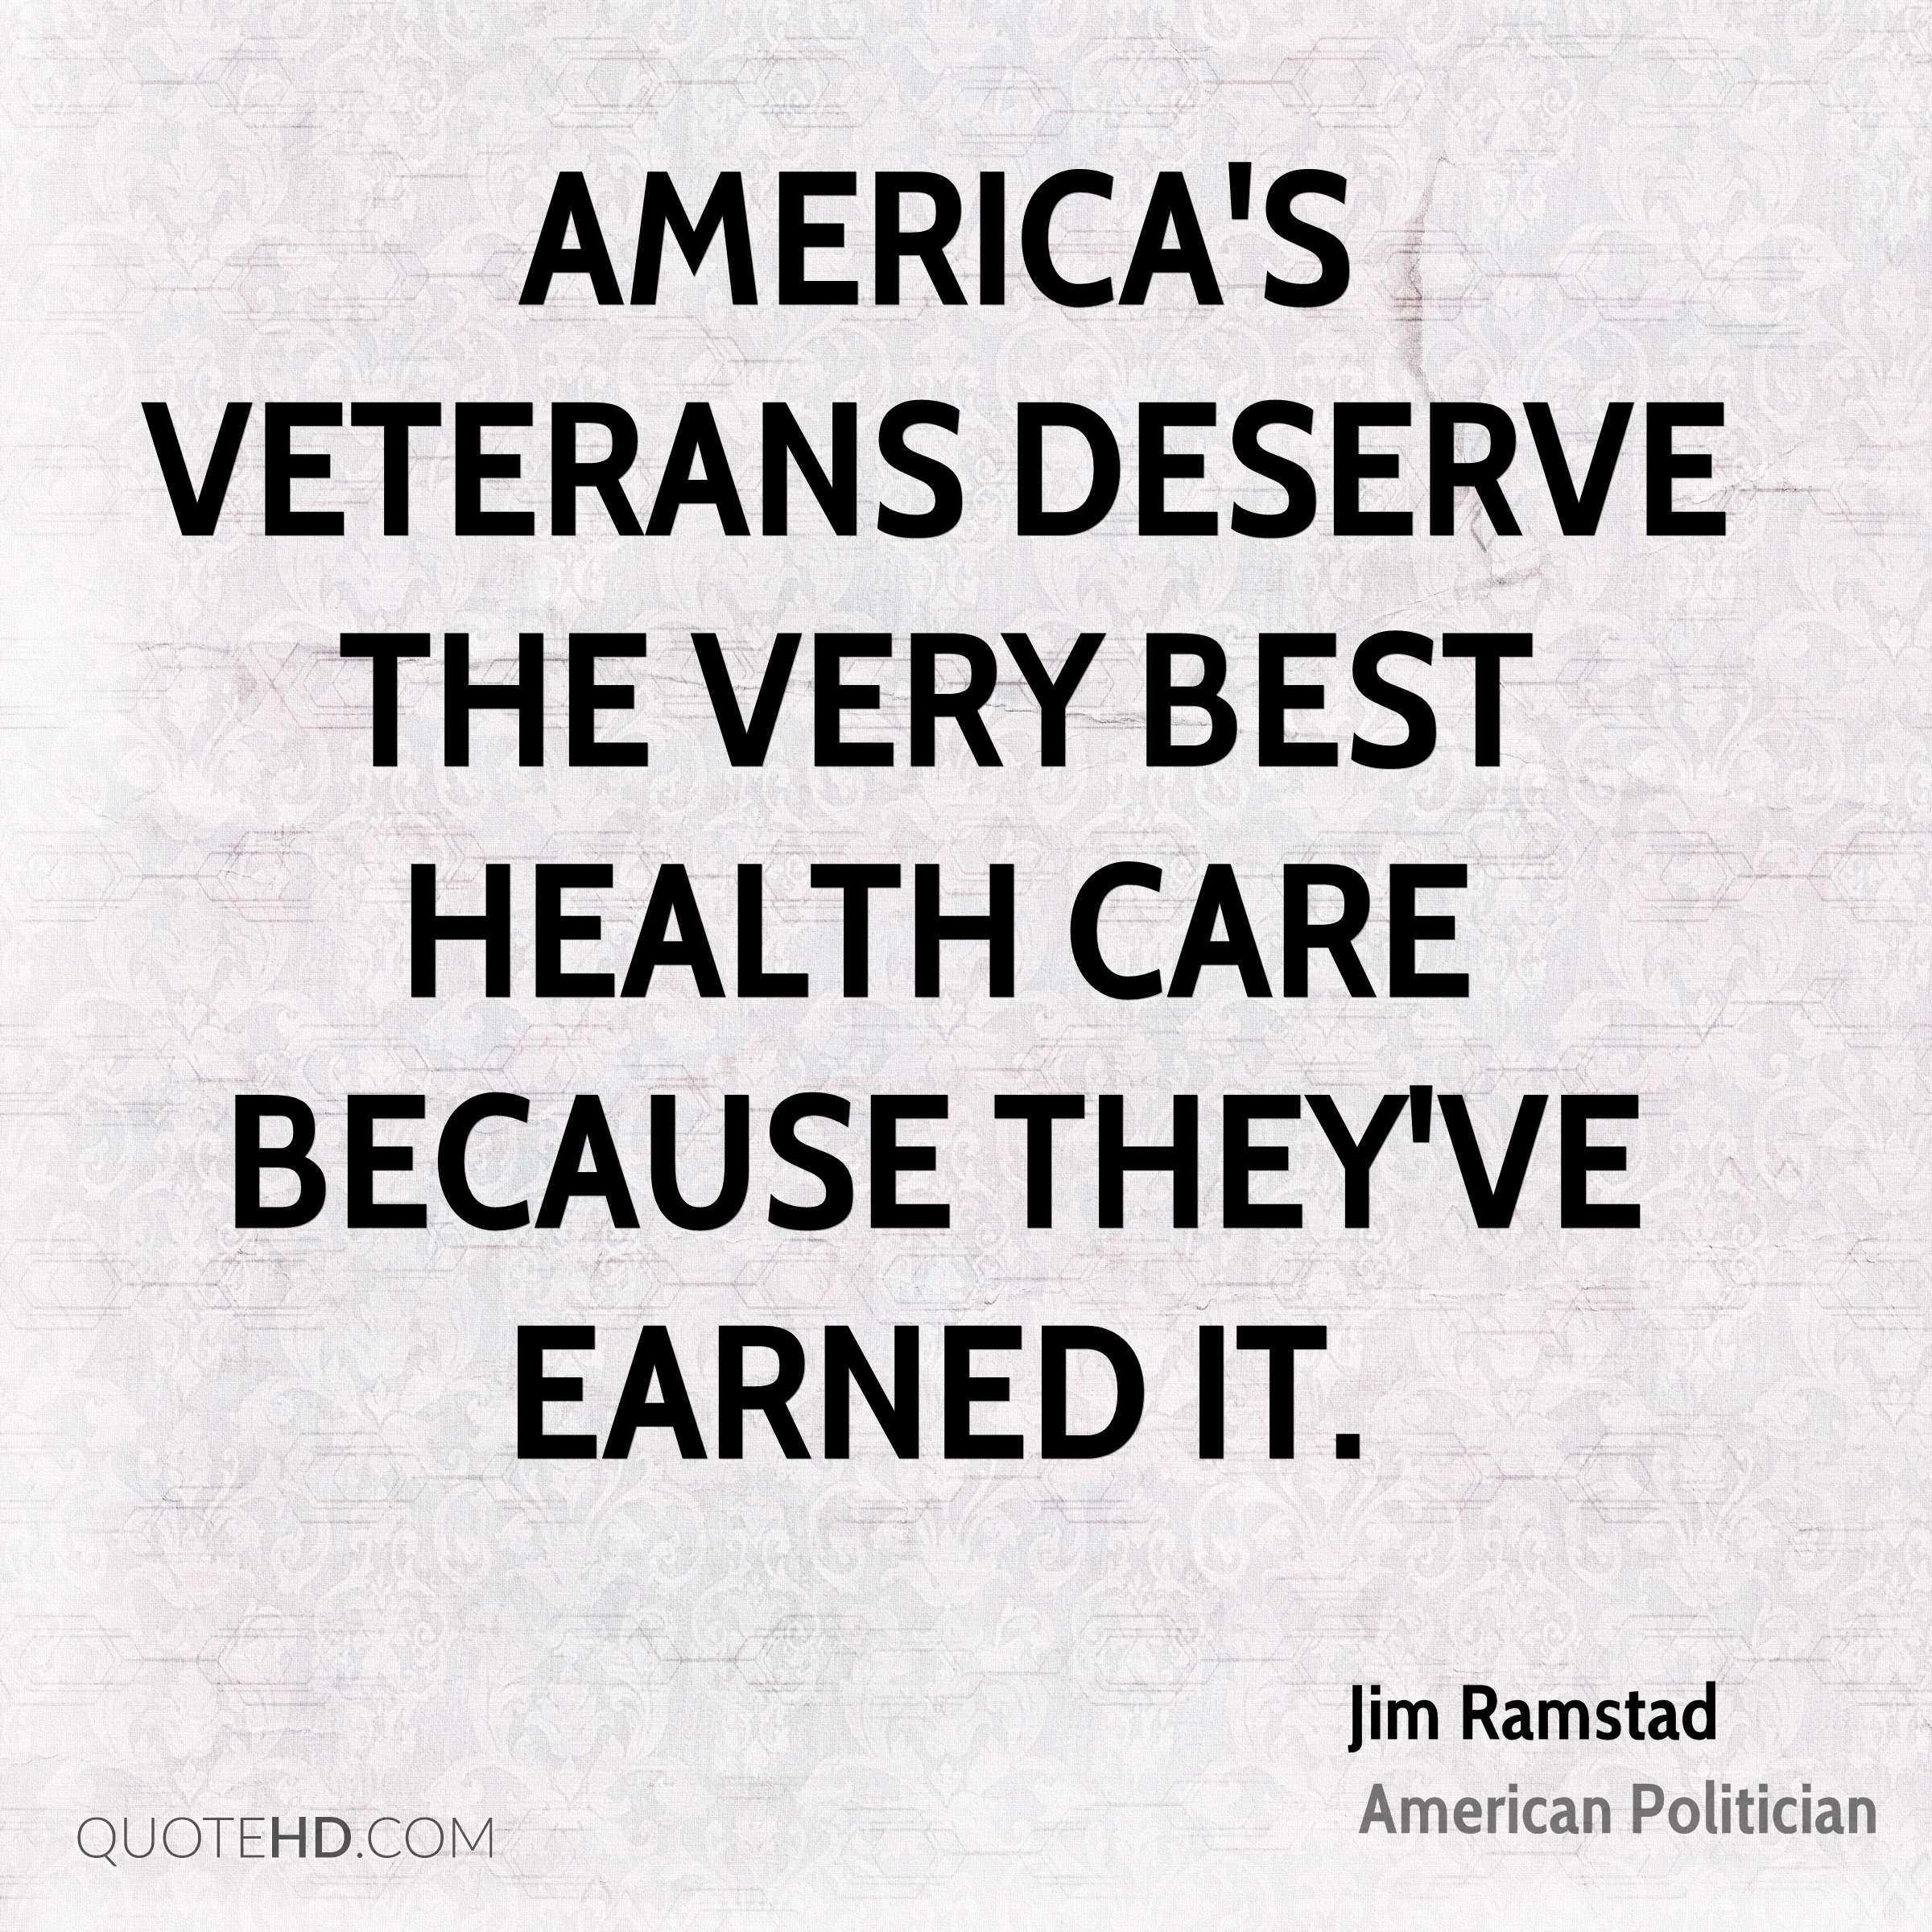 Jim Ramstad Health Quotes | QuoteHD